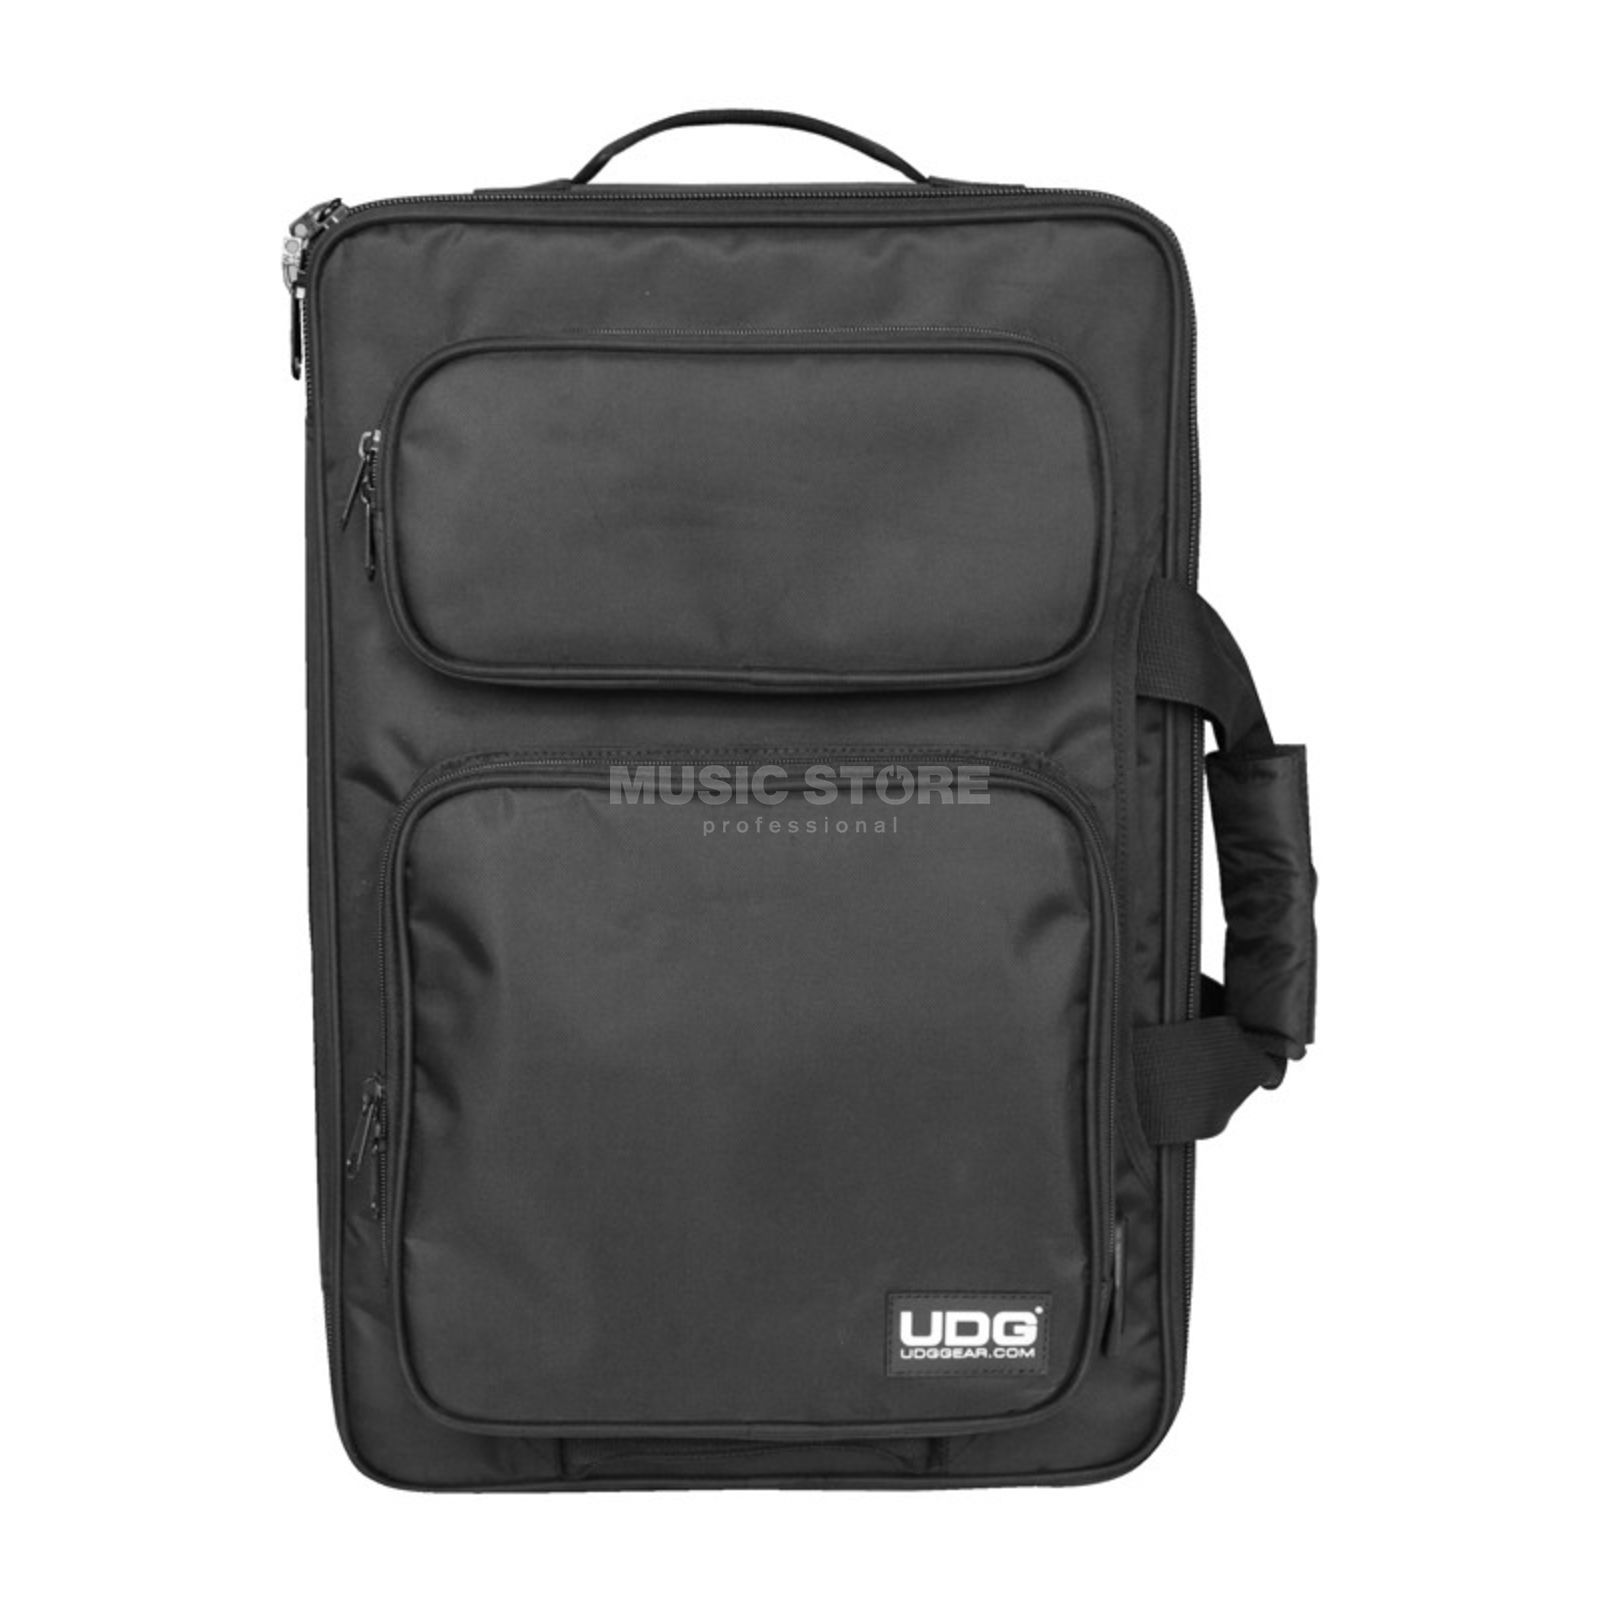 UDG NI-S4 Midi Controller Backpack Black/Orange (U9103BL/OR) Product Image